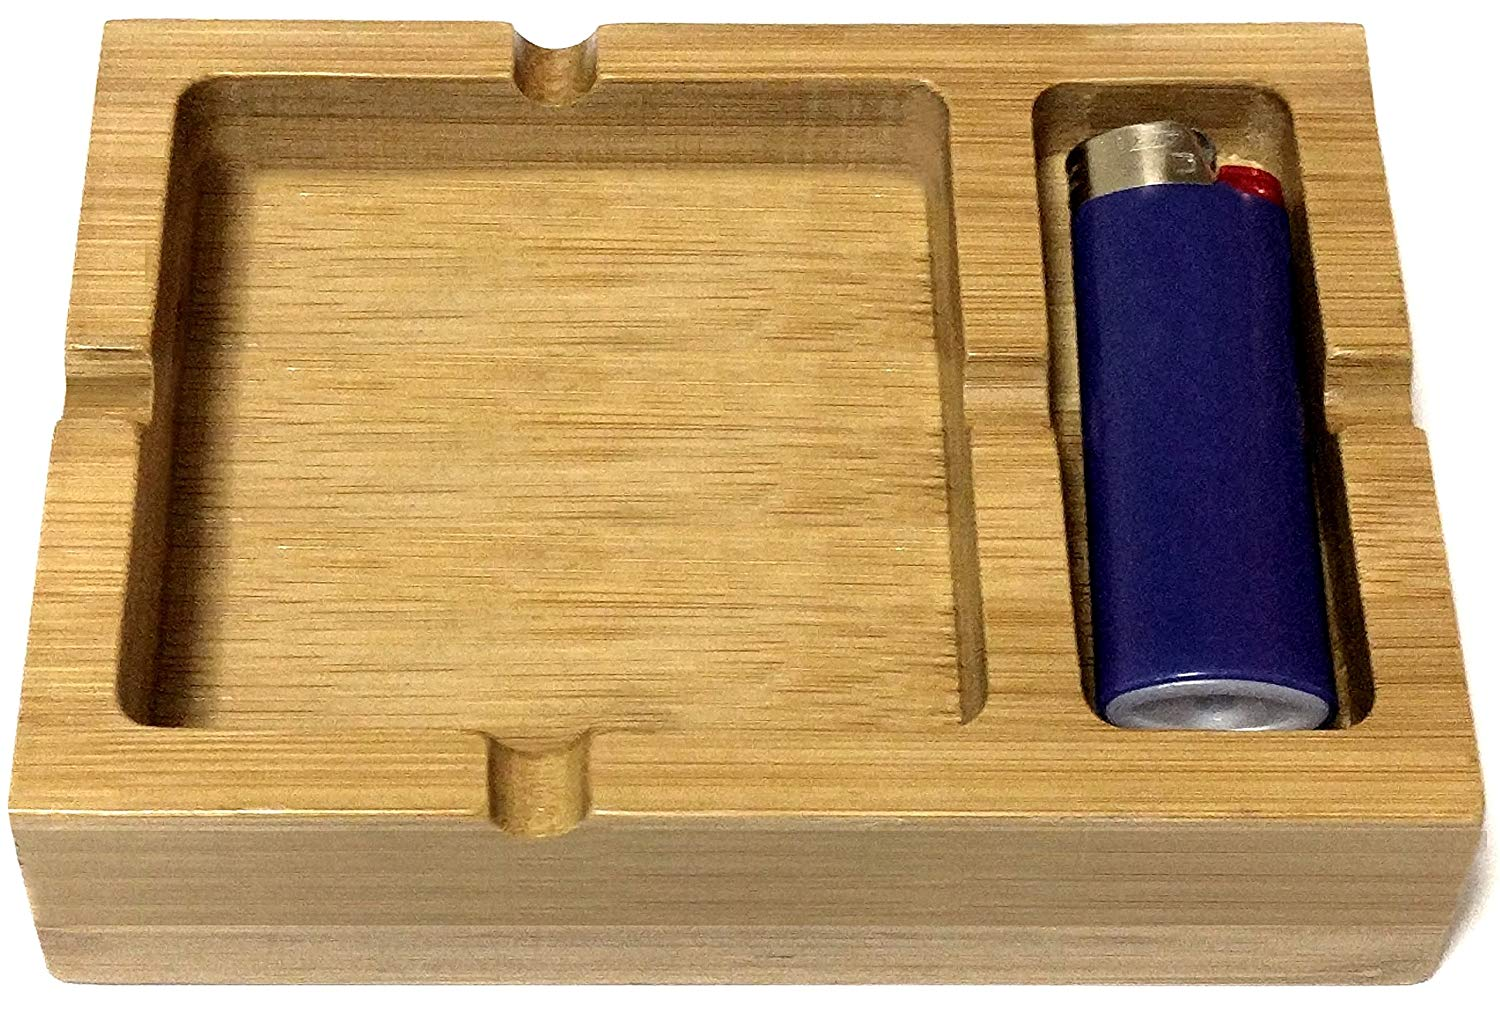 bamboo Ashtray with Space for Your Lighter